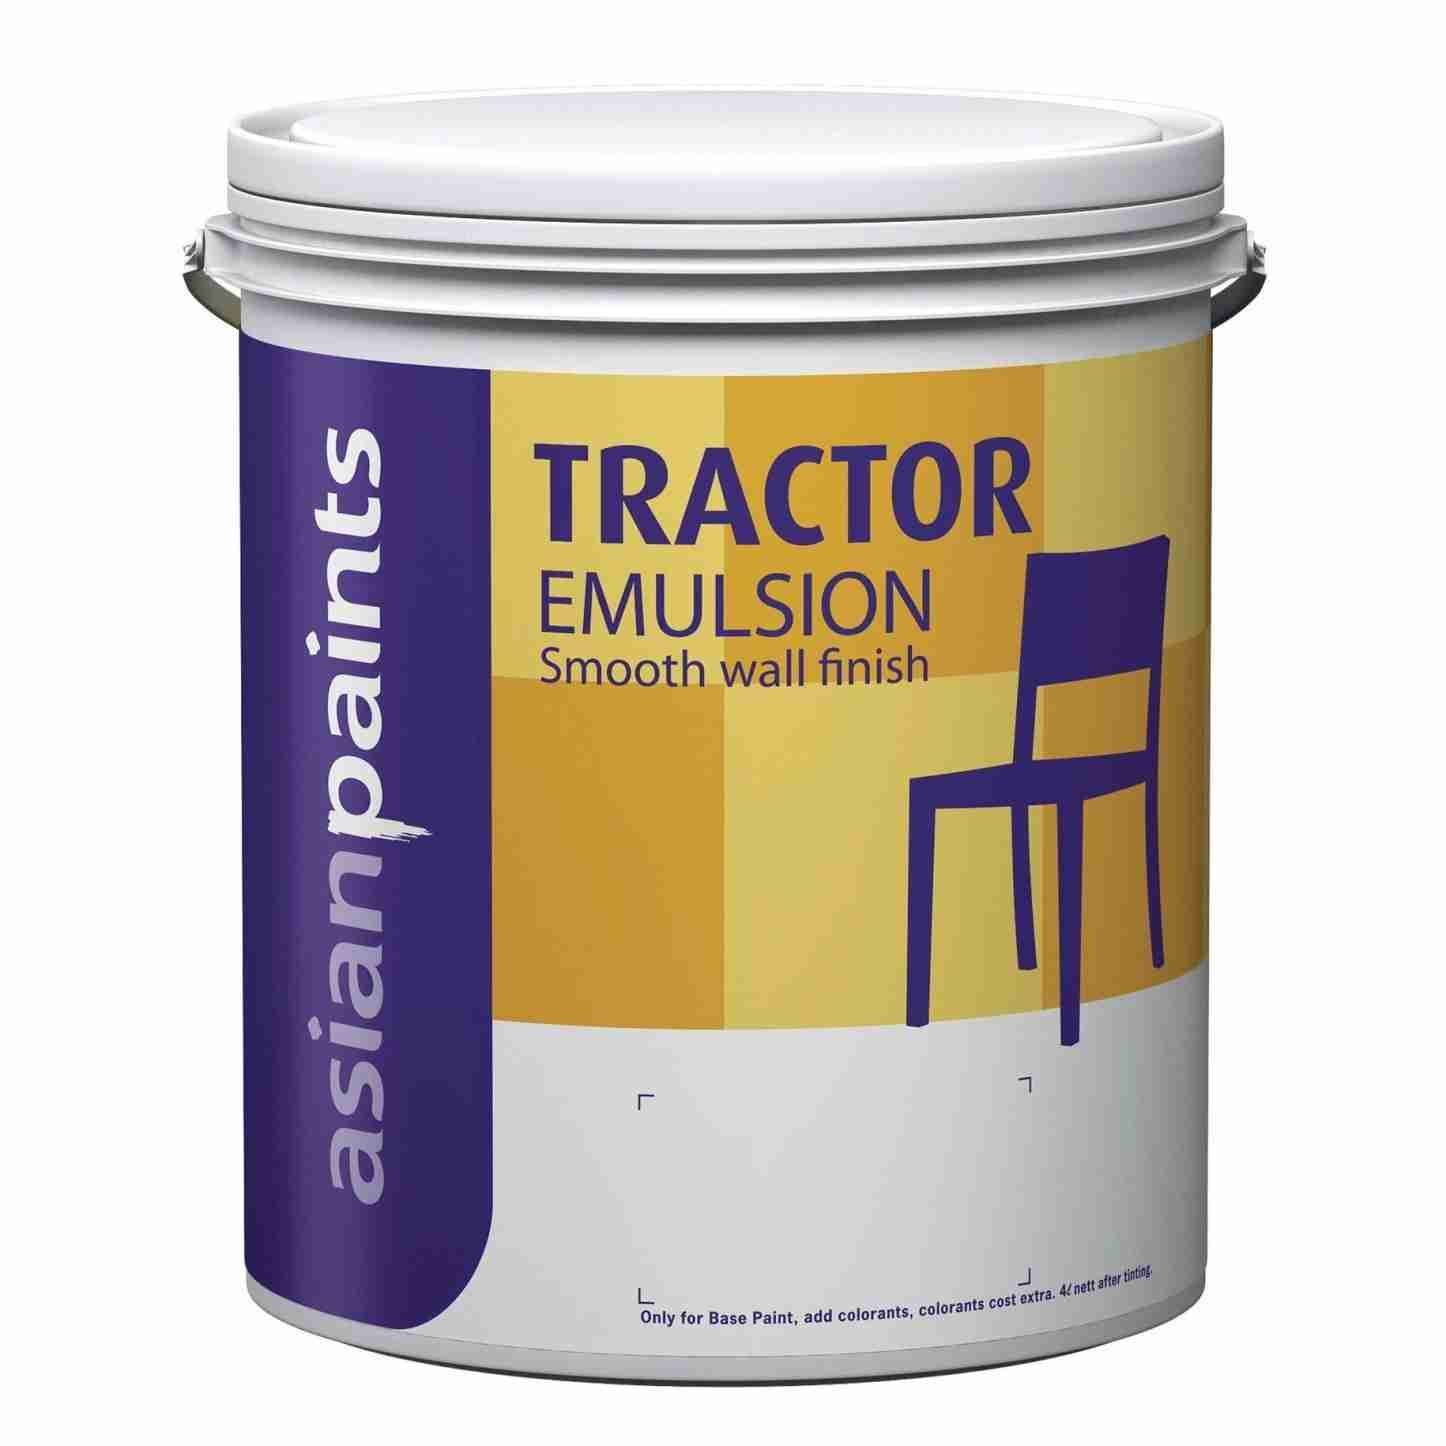 White Paint Price Volvo Life Paint Clear Reflective Paint Price Kitchen Wall Idea Paint Magnetic Primer Coming So Asian Paints Paint Prices Magnetic Paint